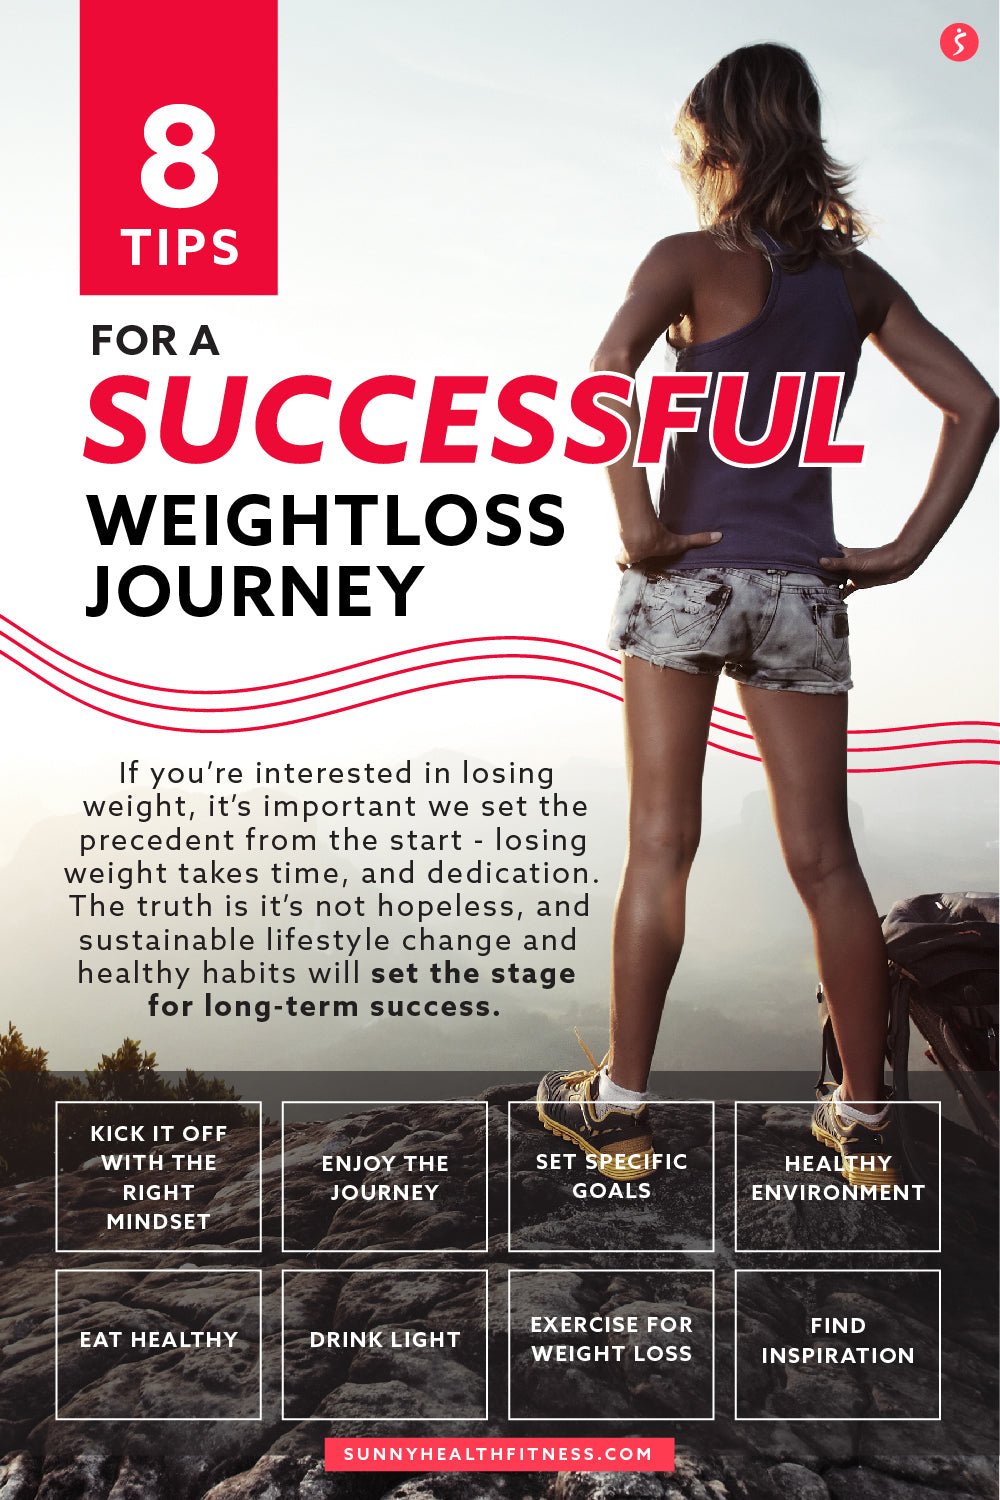 8 Tips for a Successful Weightloss Journey Infographic